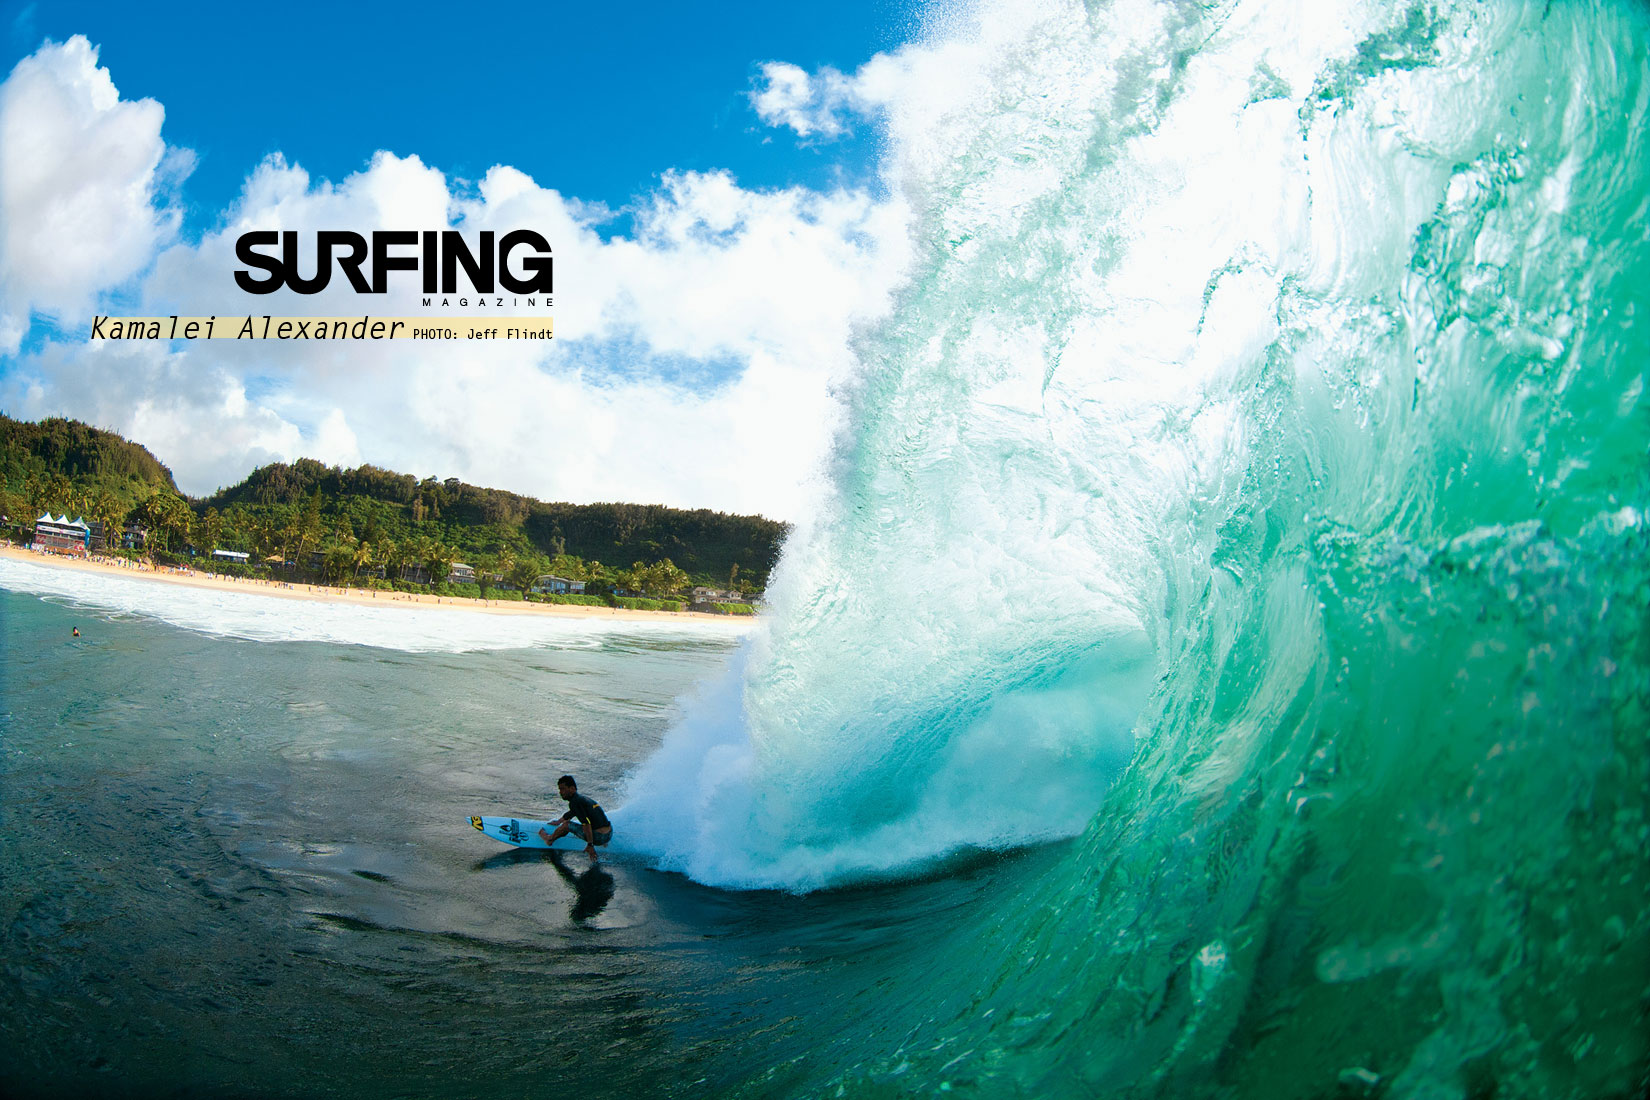 Amazing HD surfing photography wallpaper | STATUS CARS